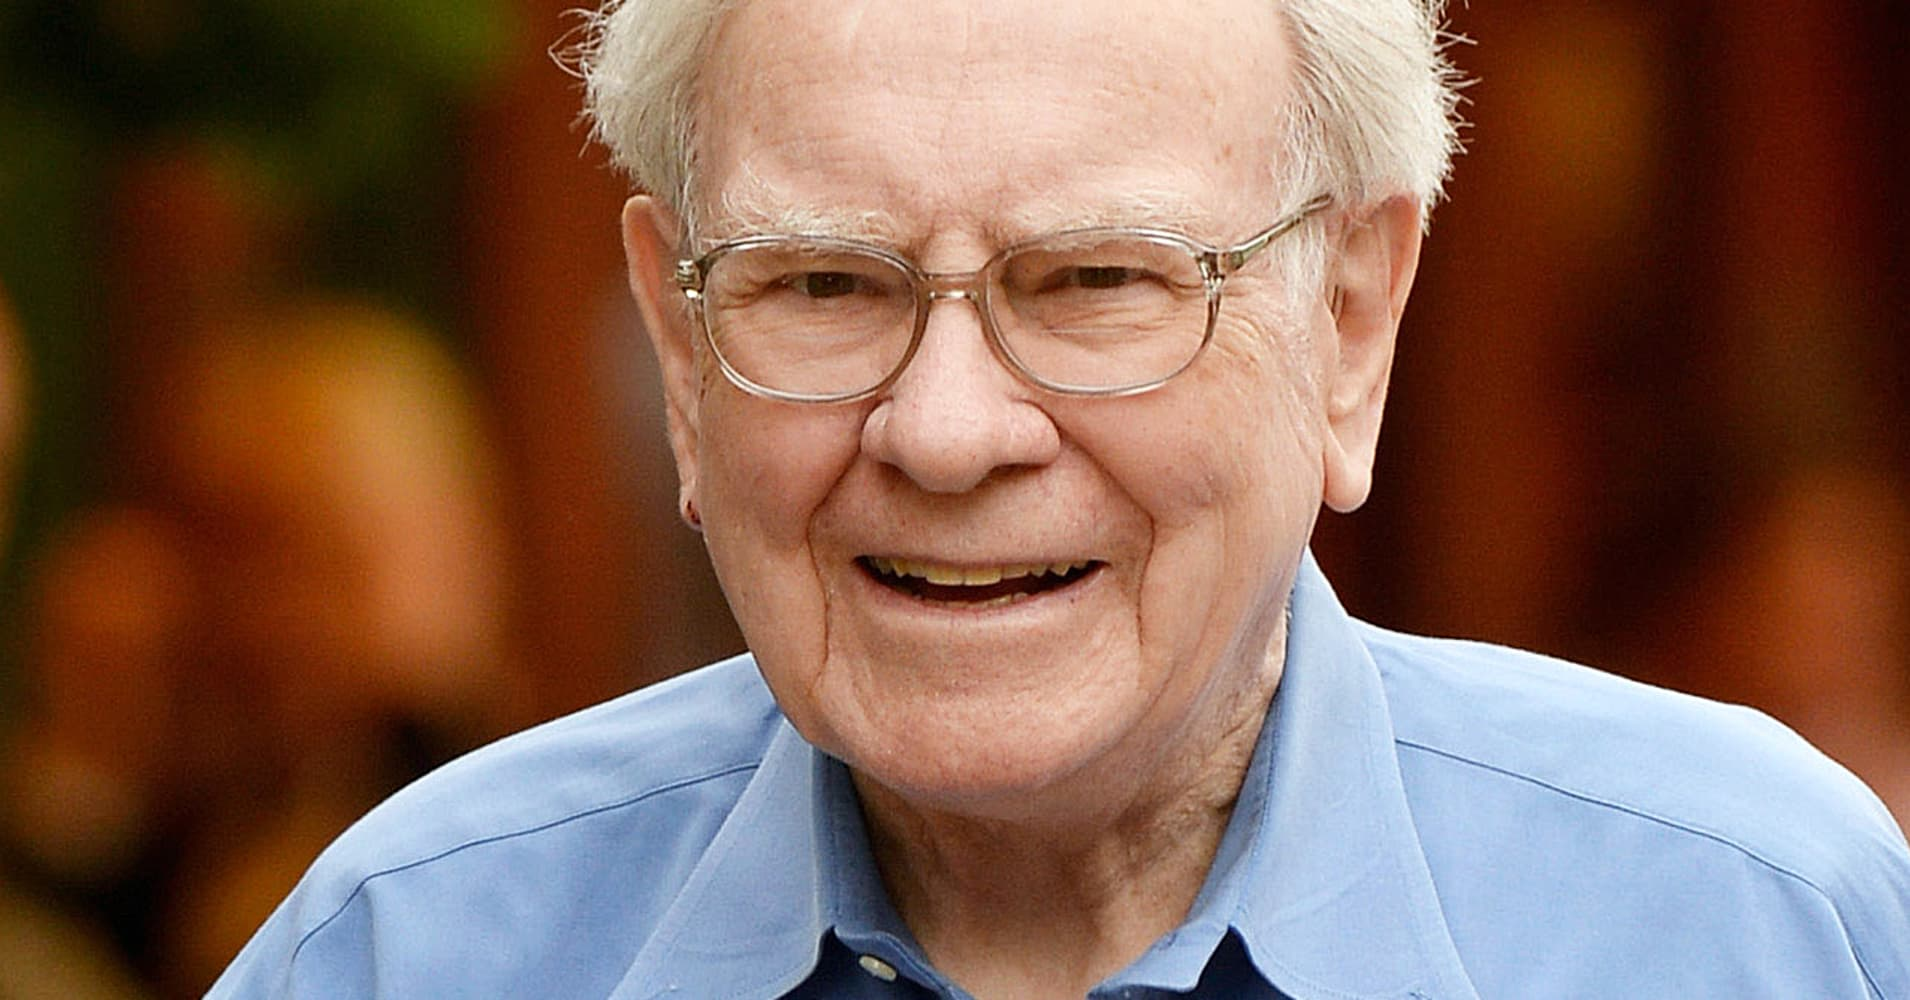 Warren Buffett: This is the greatest measure of success in life